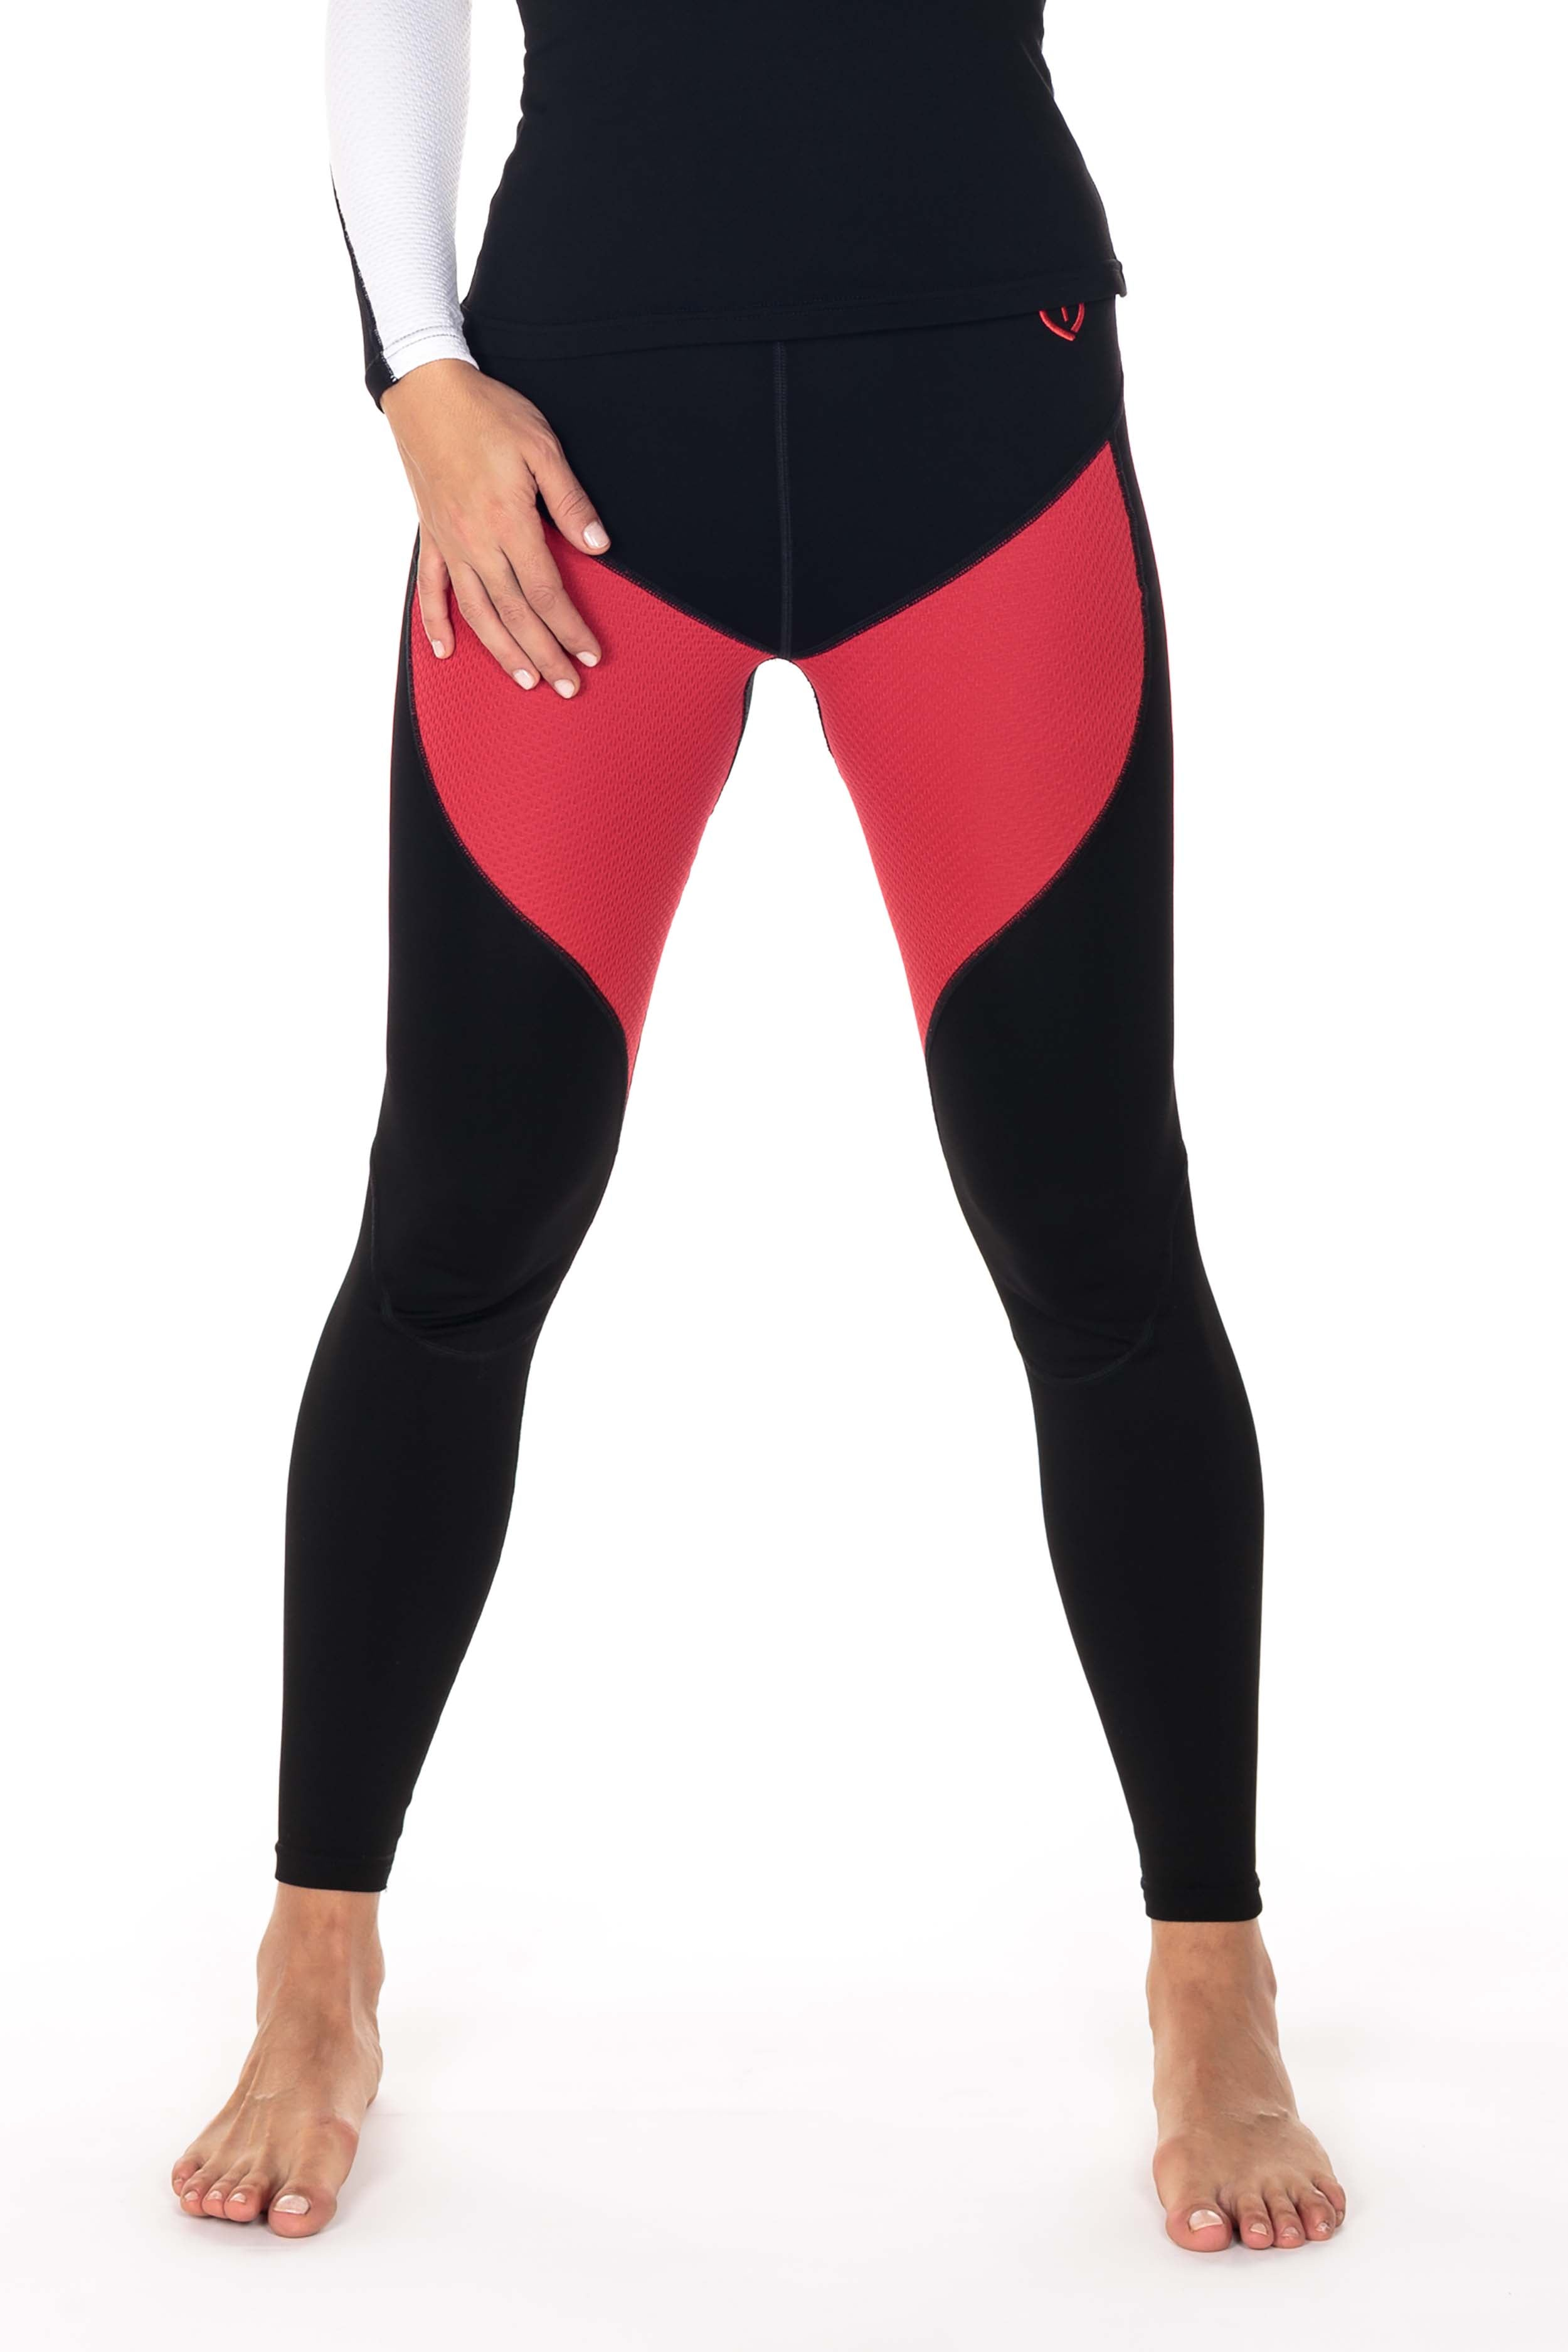 Slalom thermal underpants woman